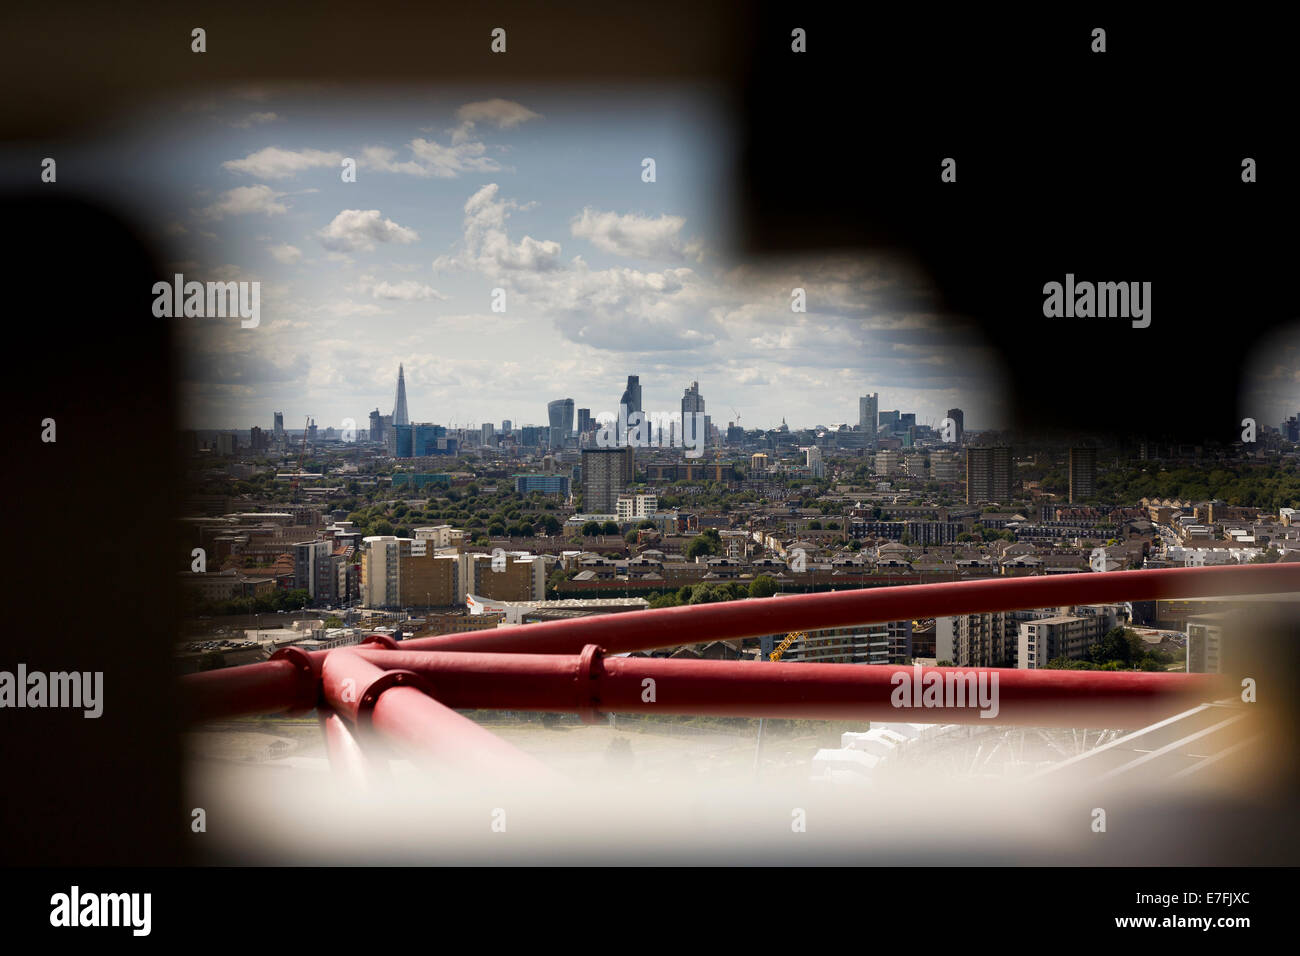 A view from the ArcelorMittal Orbit in the Queen Elizabeth Olympic Park across London, the City and the Shard - Stock Image